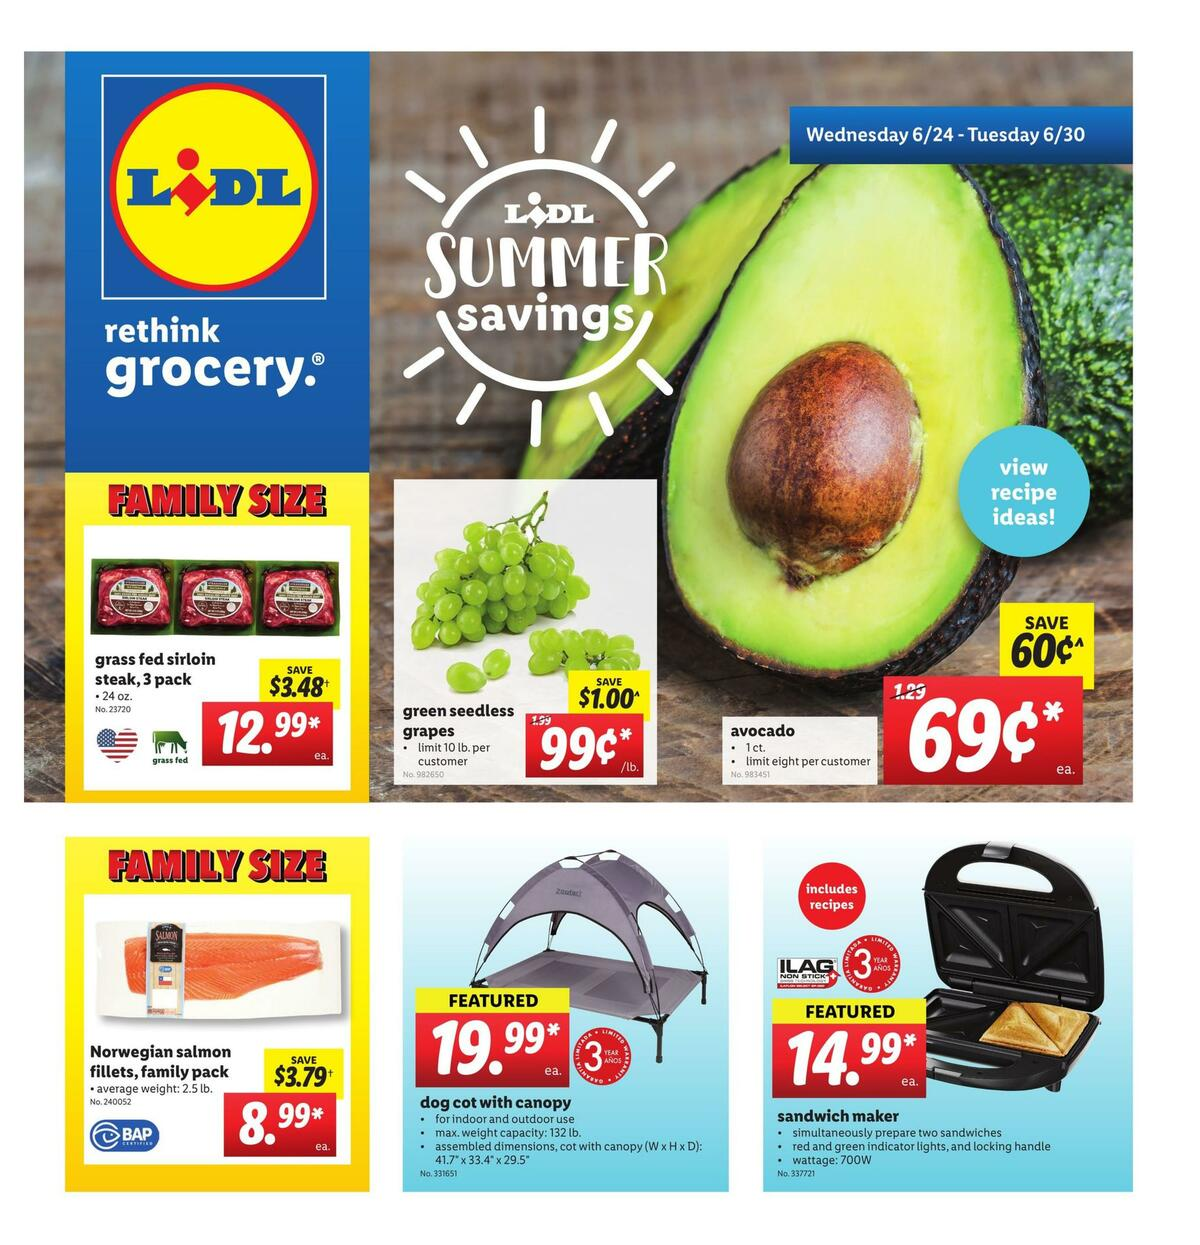 LIDL Weekly Ad from June 24